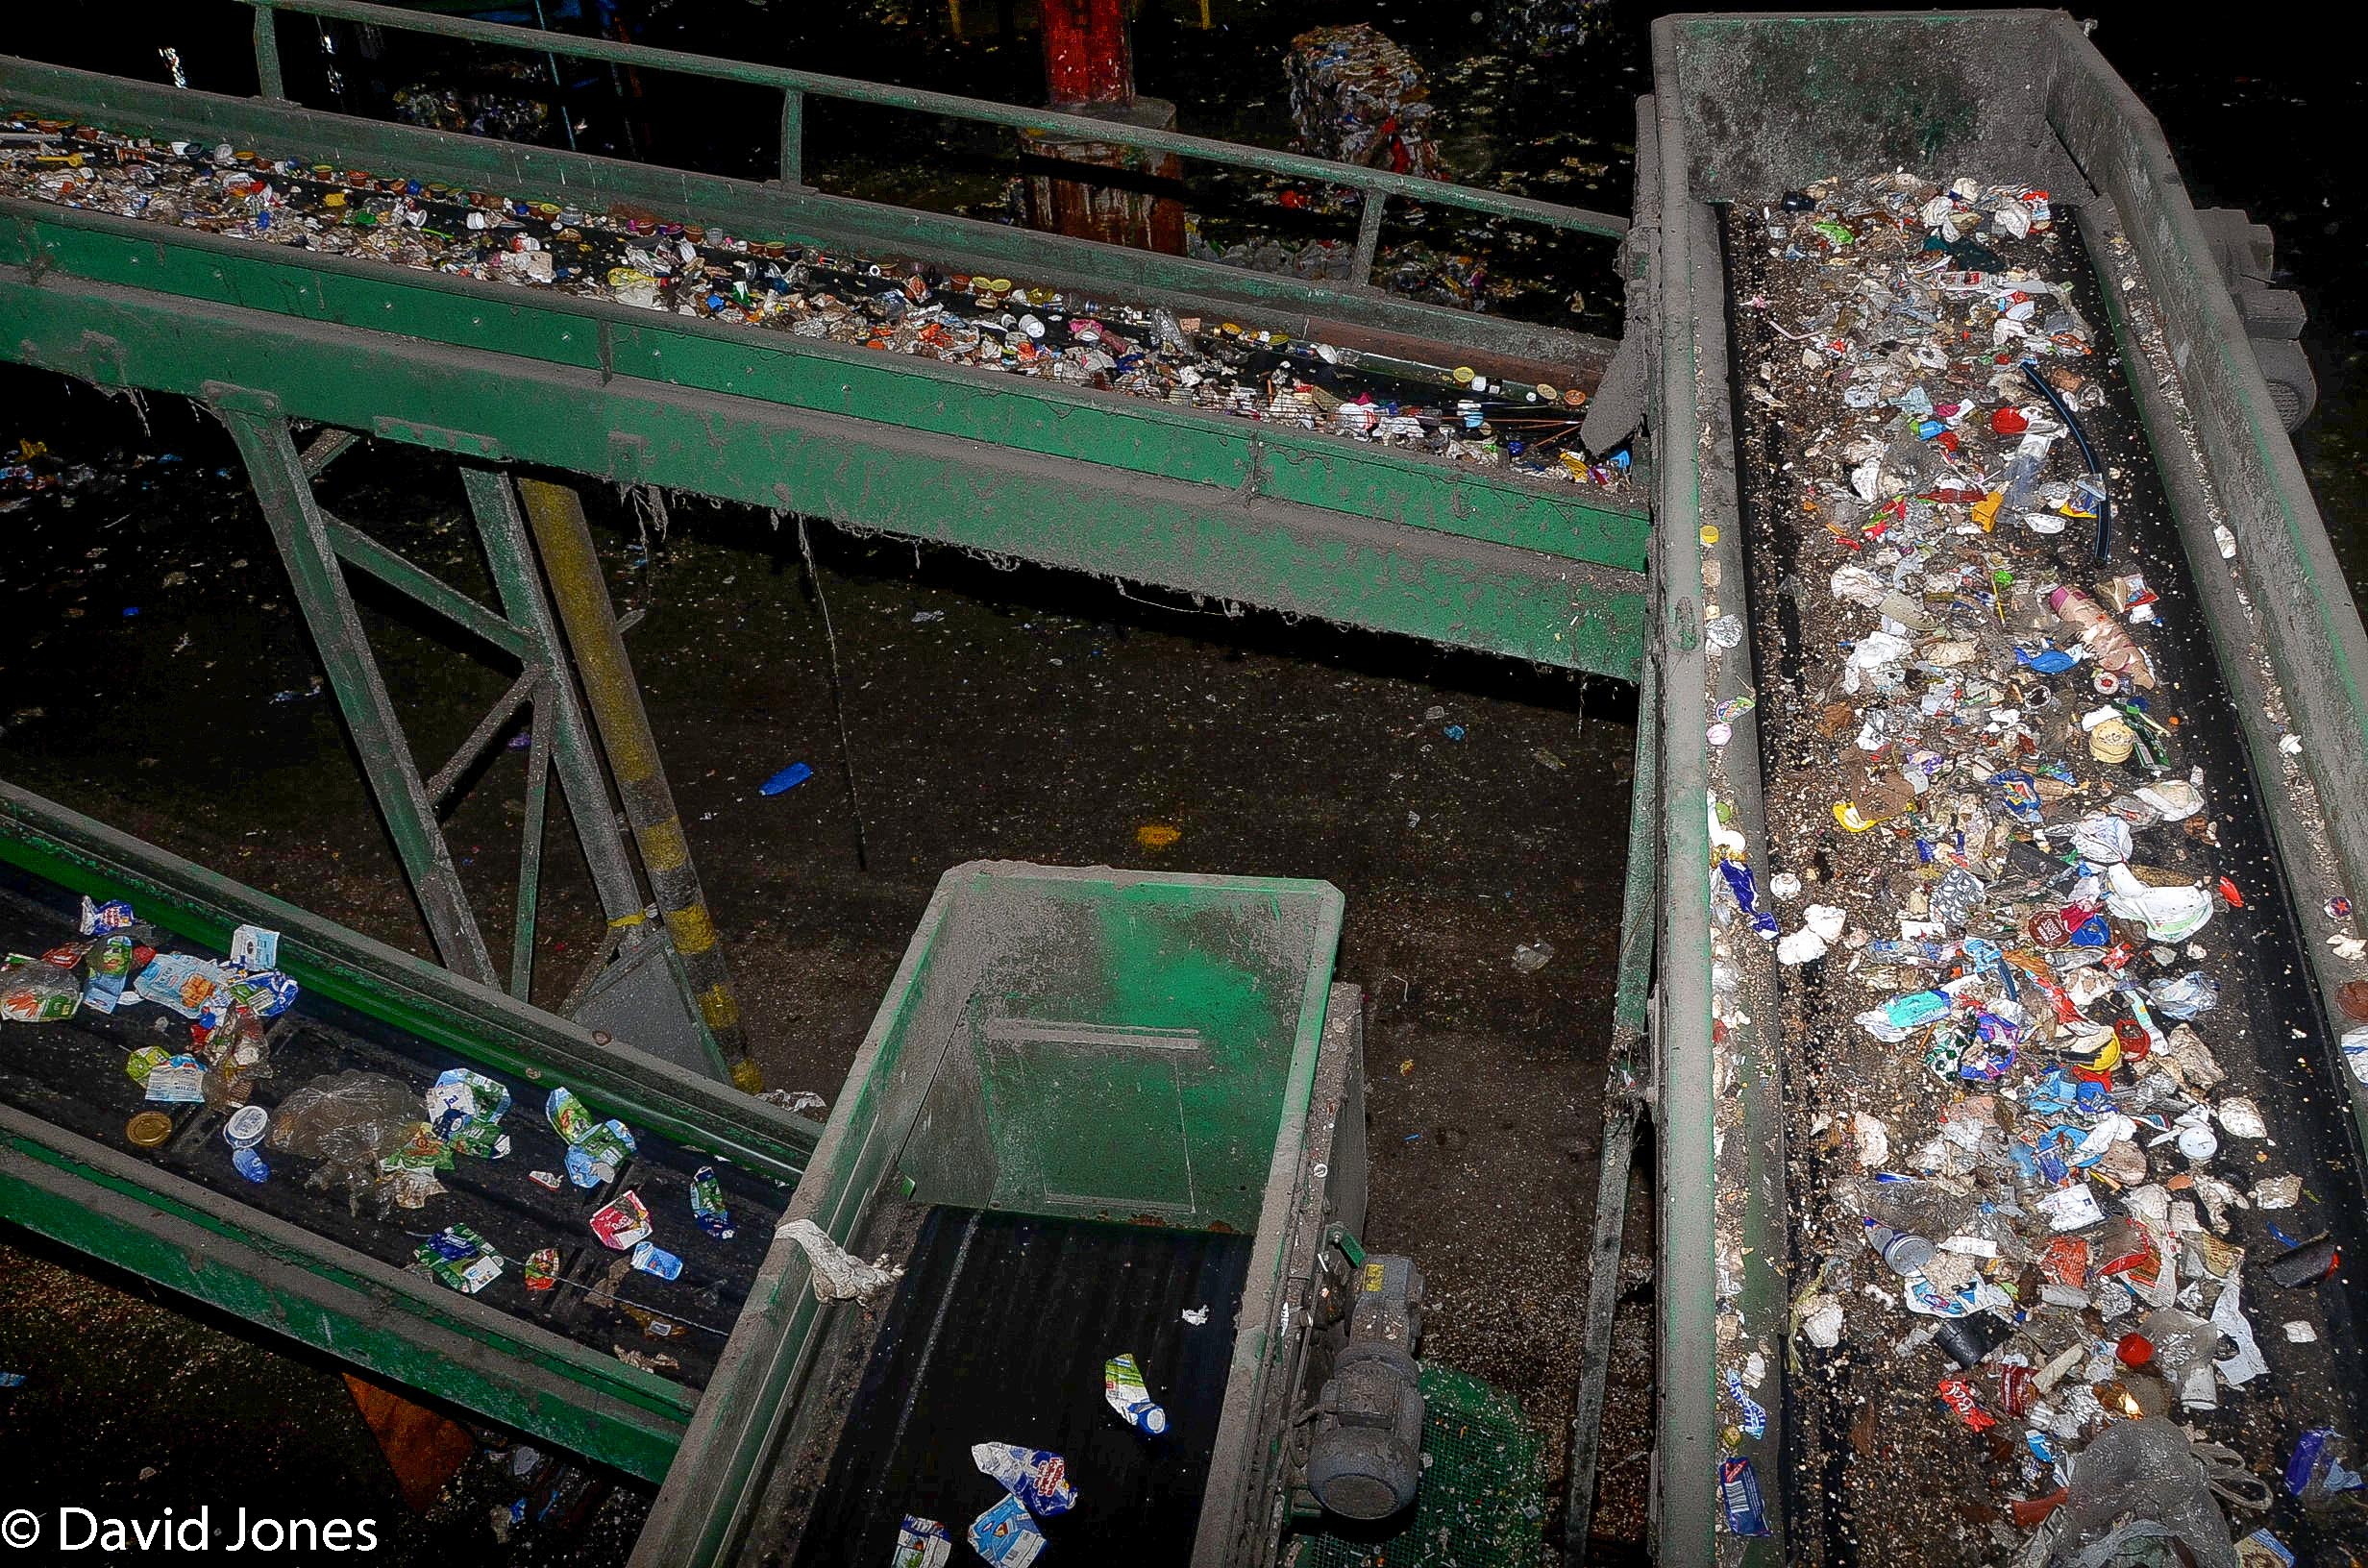 We need to reduce, not just recycle